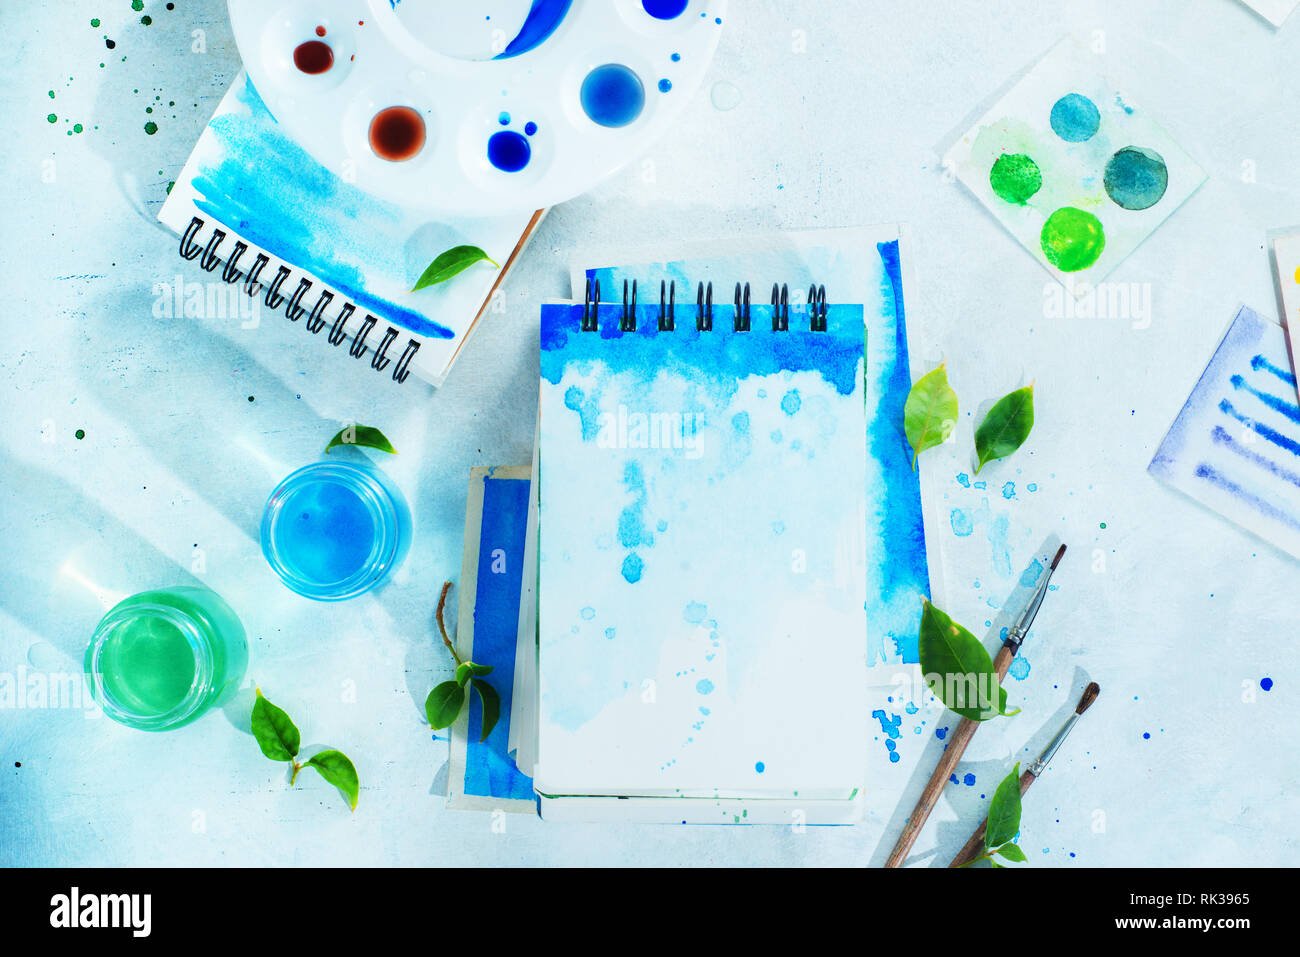 Drawing spring concept with artist tools, green and blue watercolor sketchbooks, brushes and color palette on a light background with copy space - Stock Image